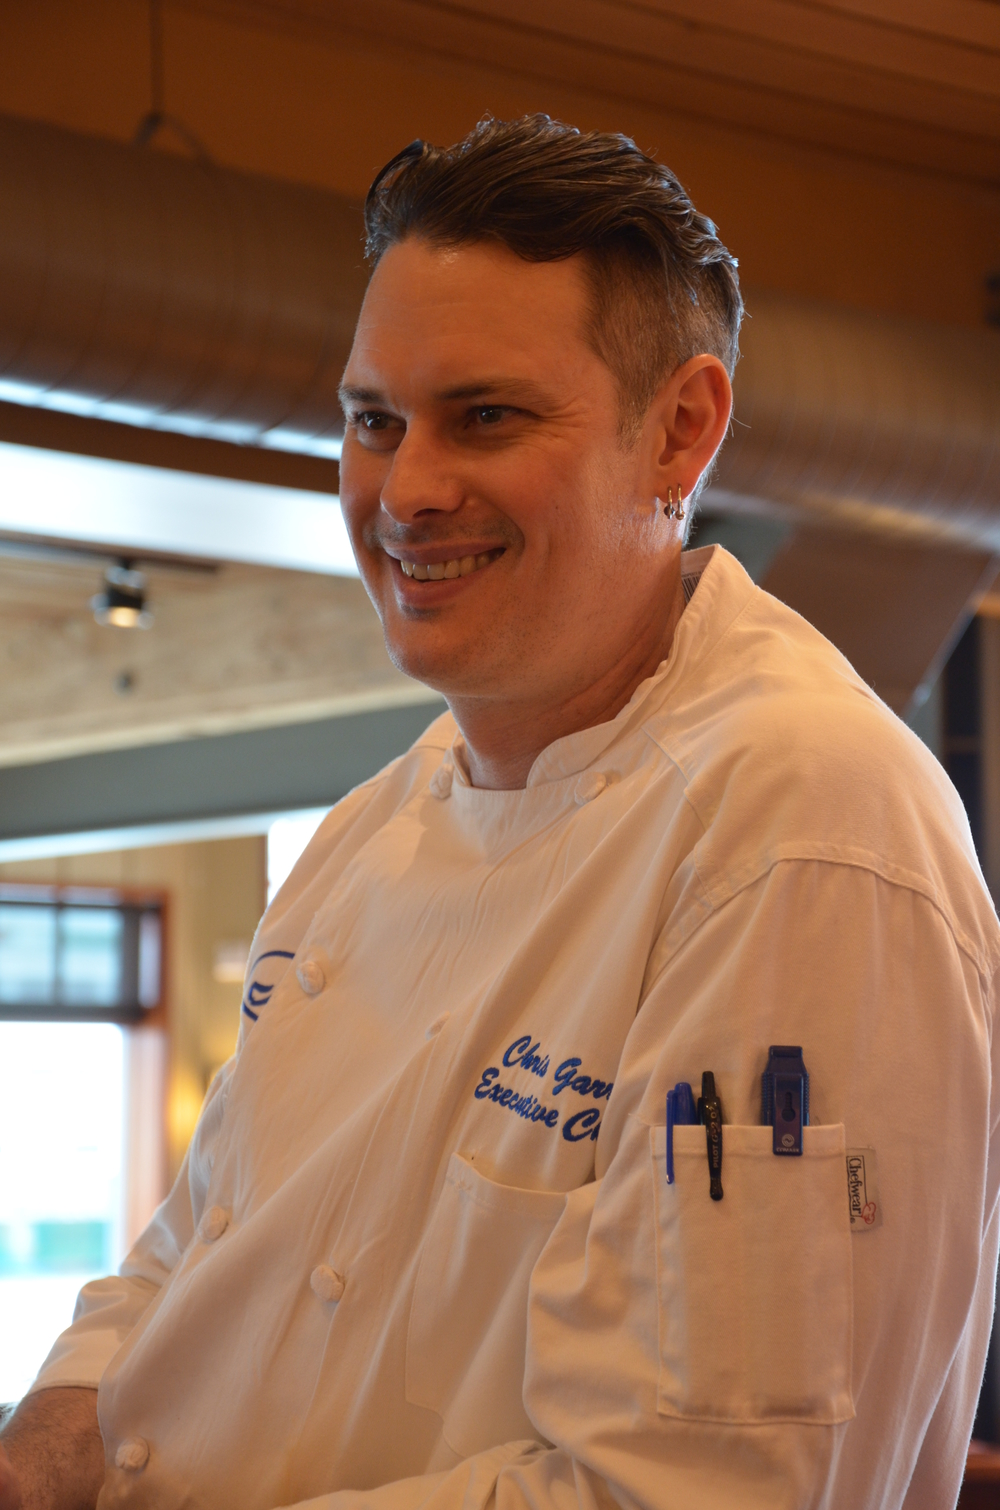 Executive Chef Chris Garr